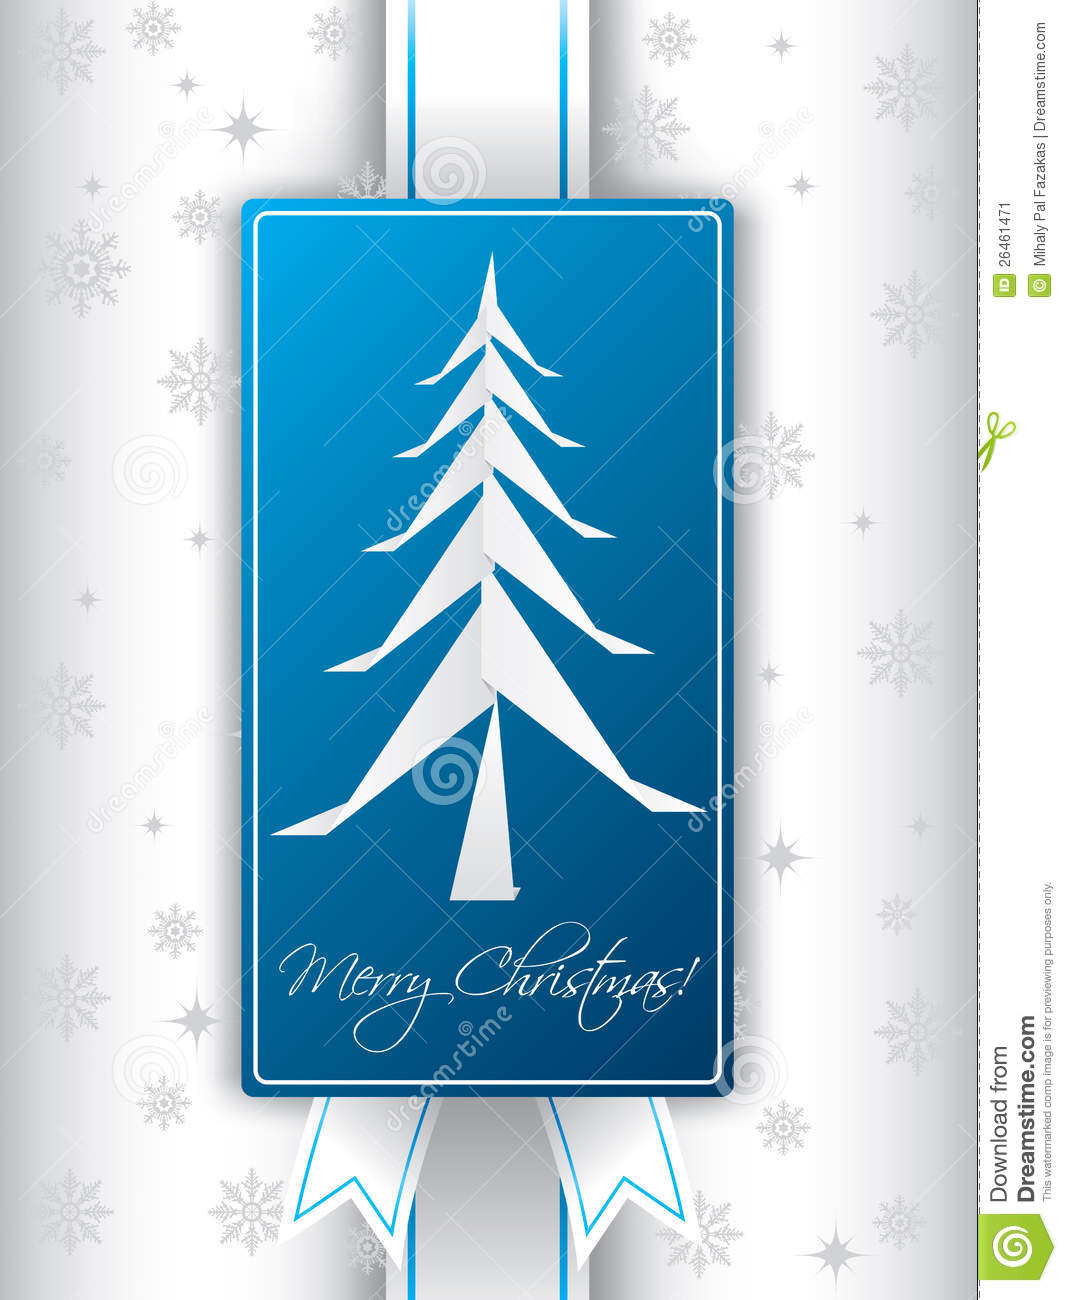 Christmas greeting card design with ribbon and origami christmas tree.: dreamstime.com/stock-image-christmas-greeting-card-design-origami...